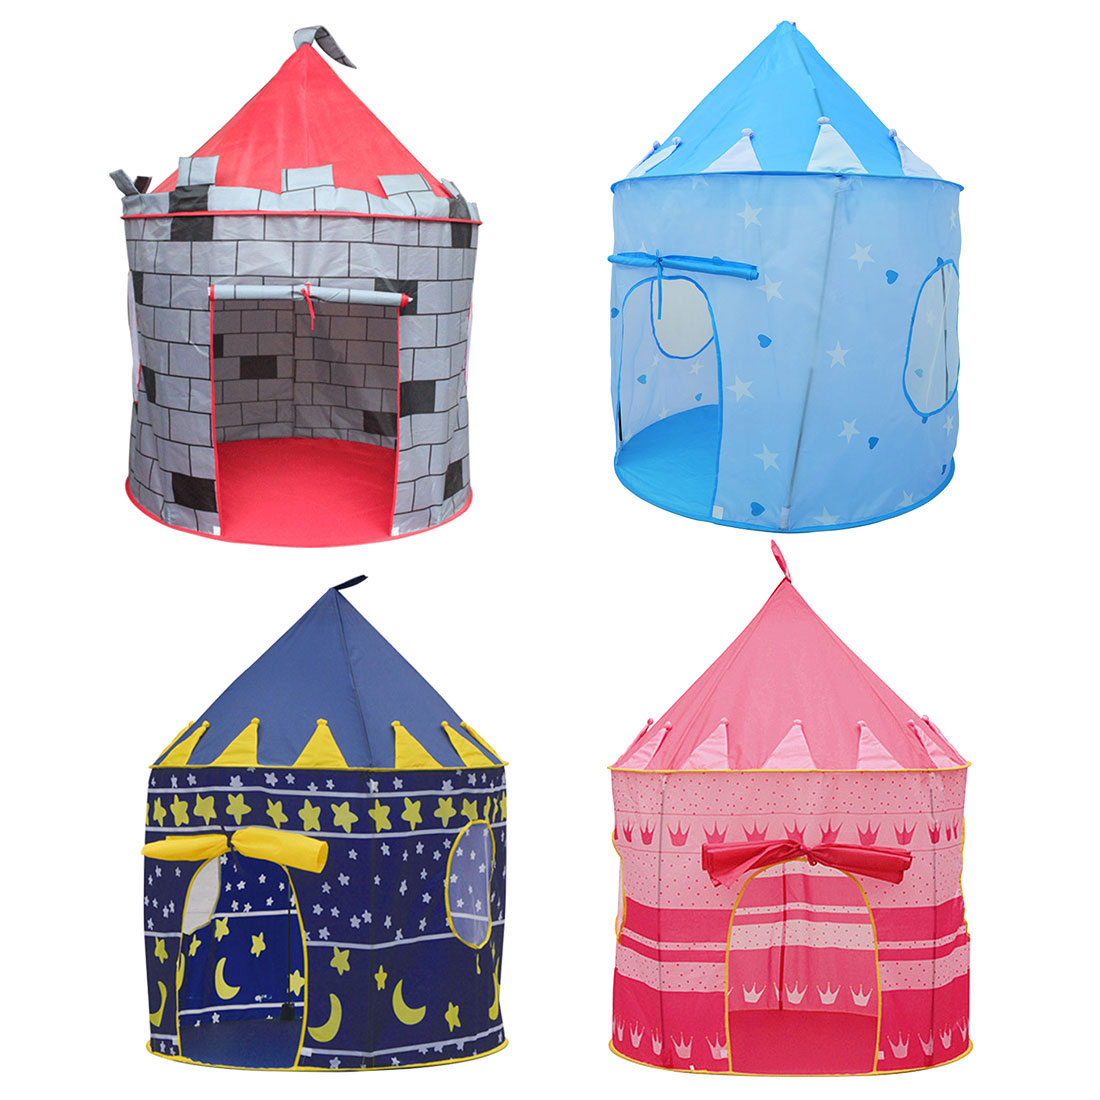 4 Colors Play Tent Portable Foldable Tipi Prince Folding Tent Children Boy Castle Cubby Play House Kids Gifts Outdoor Toy Tents